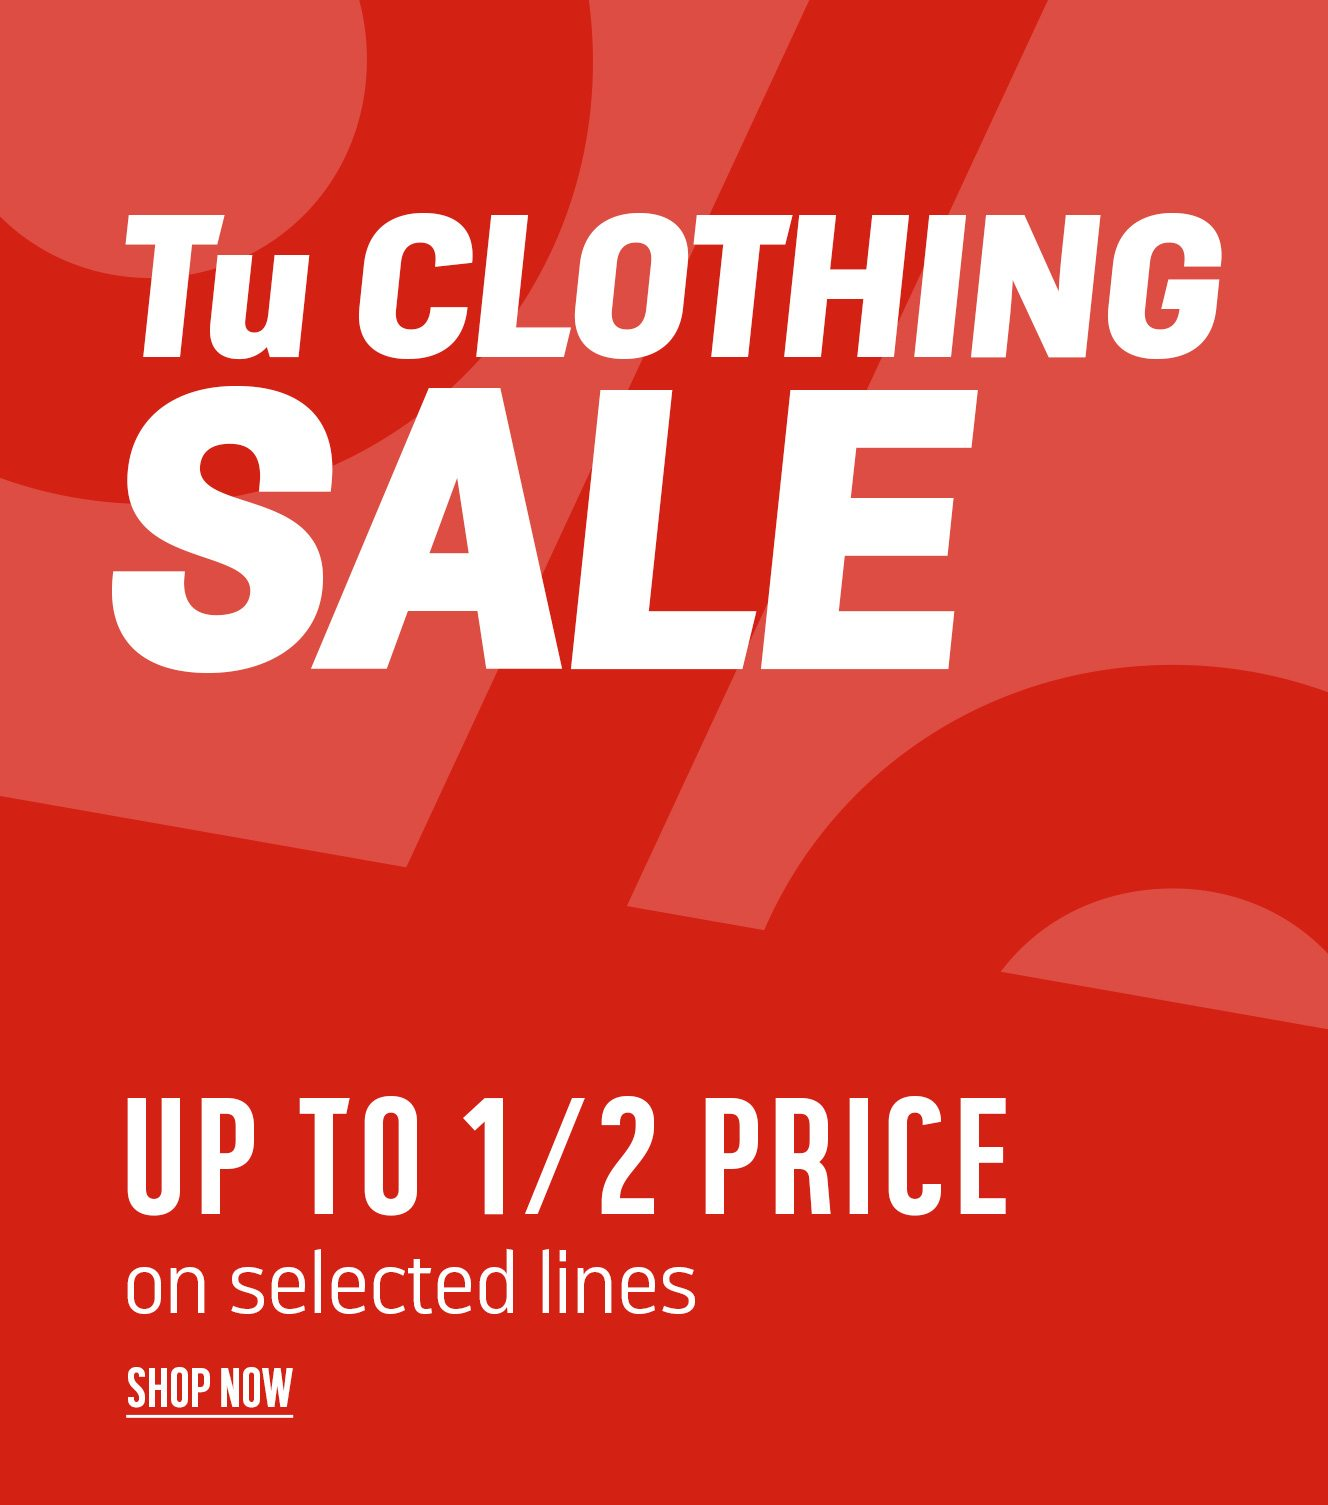 1bc14b639 Tu Clothing Sale - Save up to 1/2 price on selected lines... - Argos ...